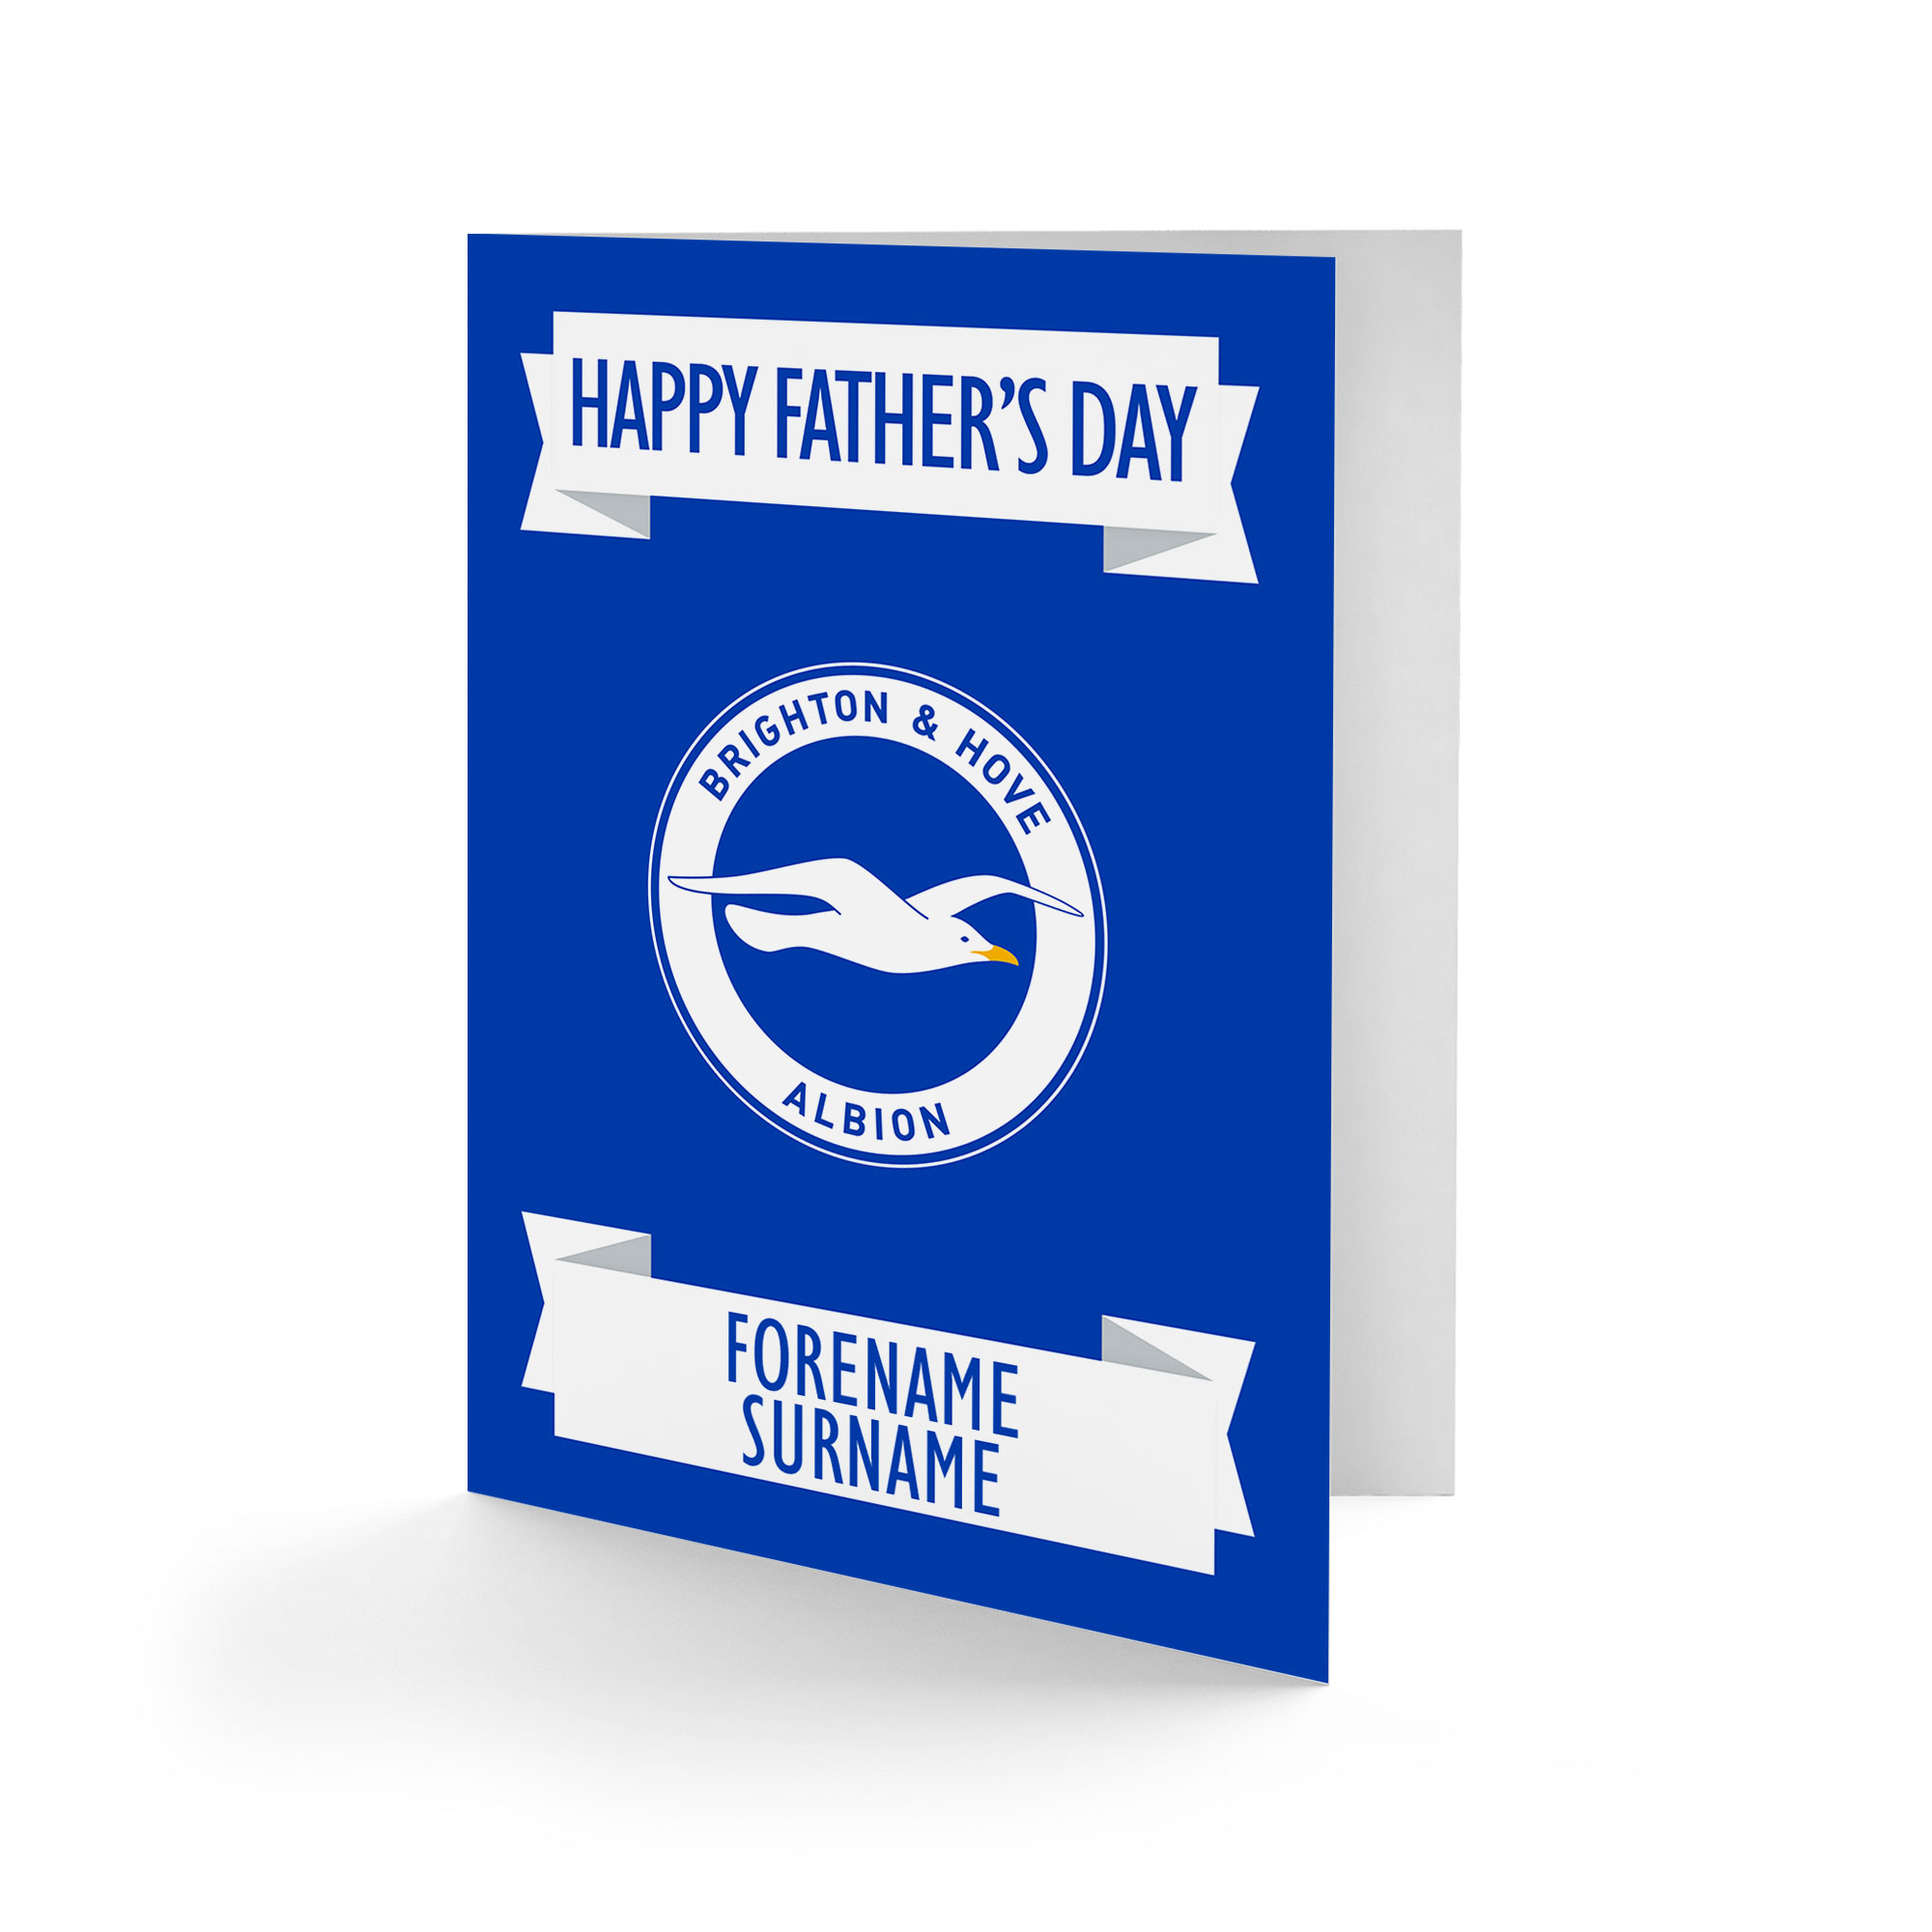 Brighton & Hove Albion FC Crest Father's Day Card